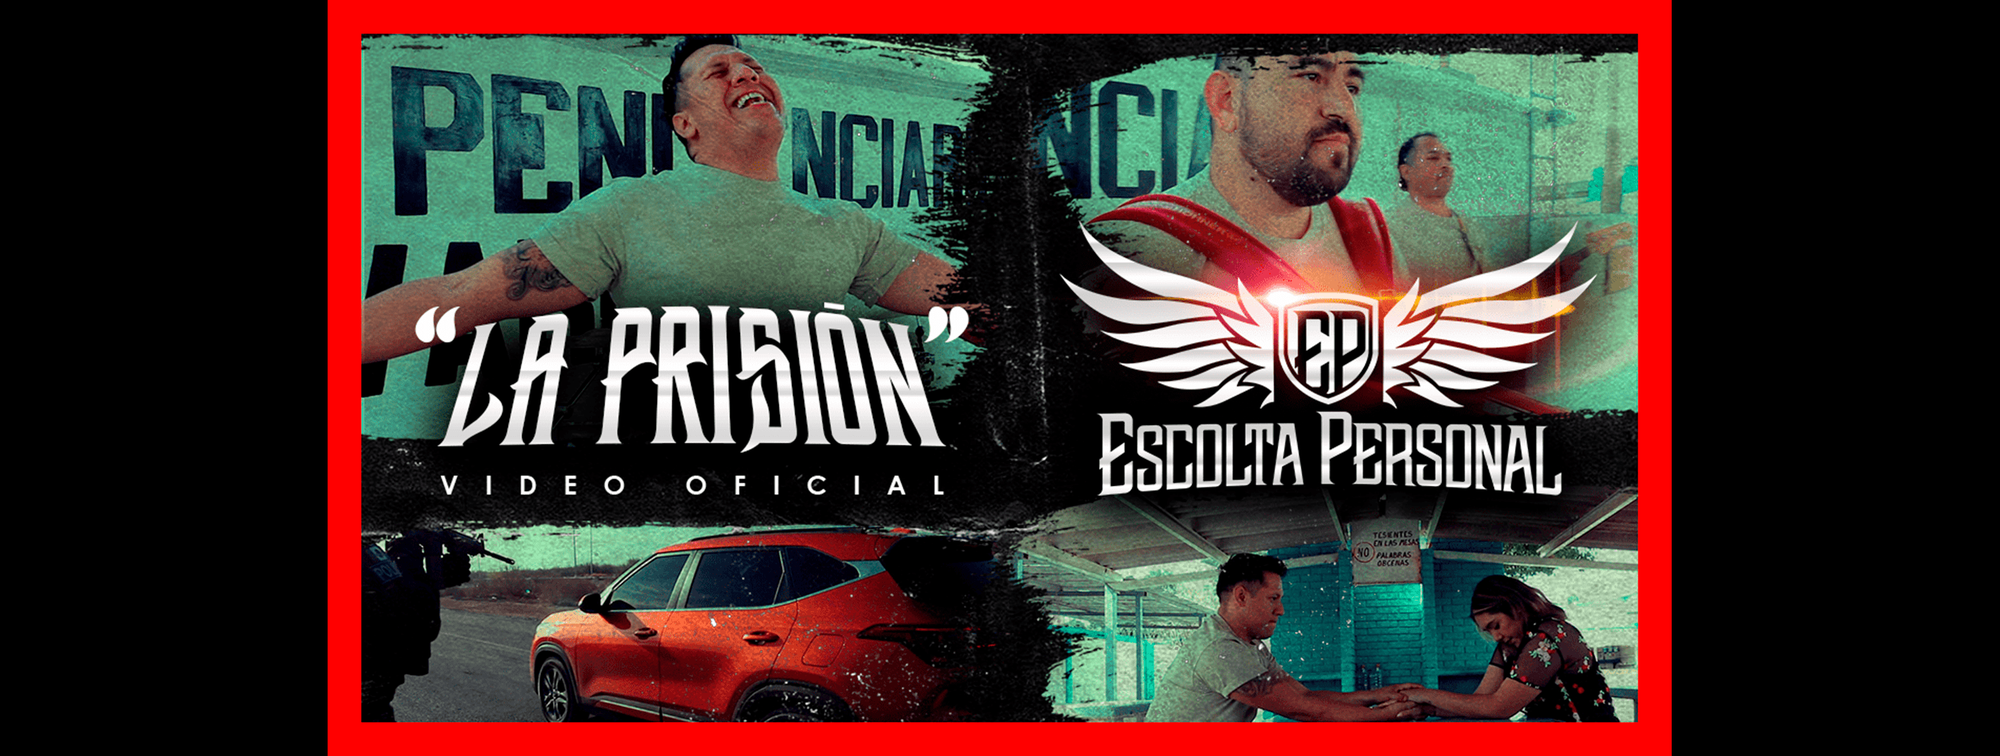 "Mira aquí el nuevo Video Oficial de ""Escolta Personal"" La Prisión, disponible en Youtube y todas las Plataformas Digitales"